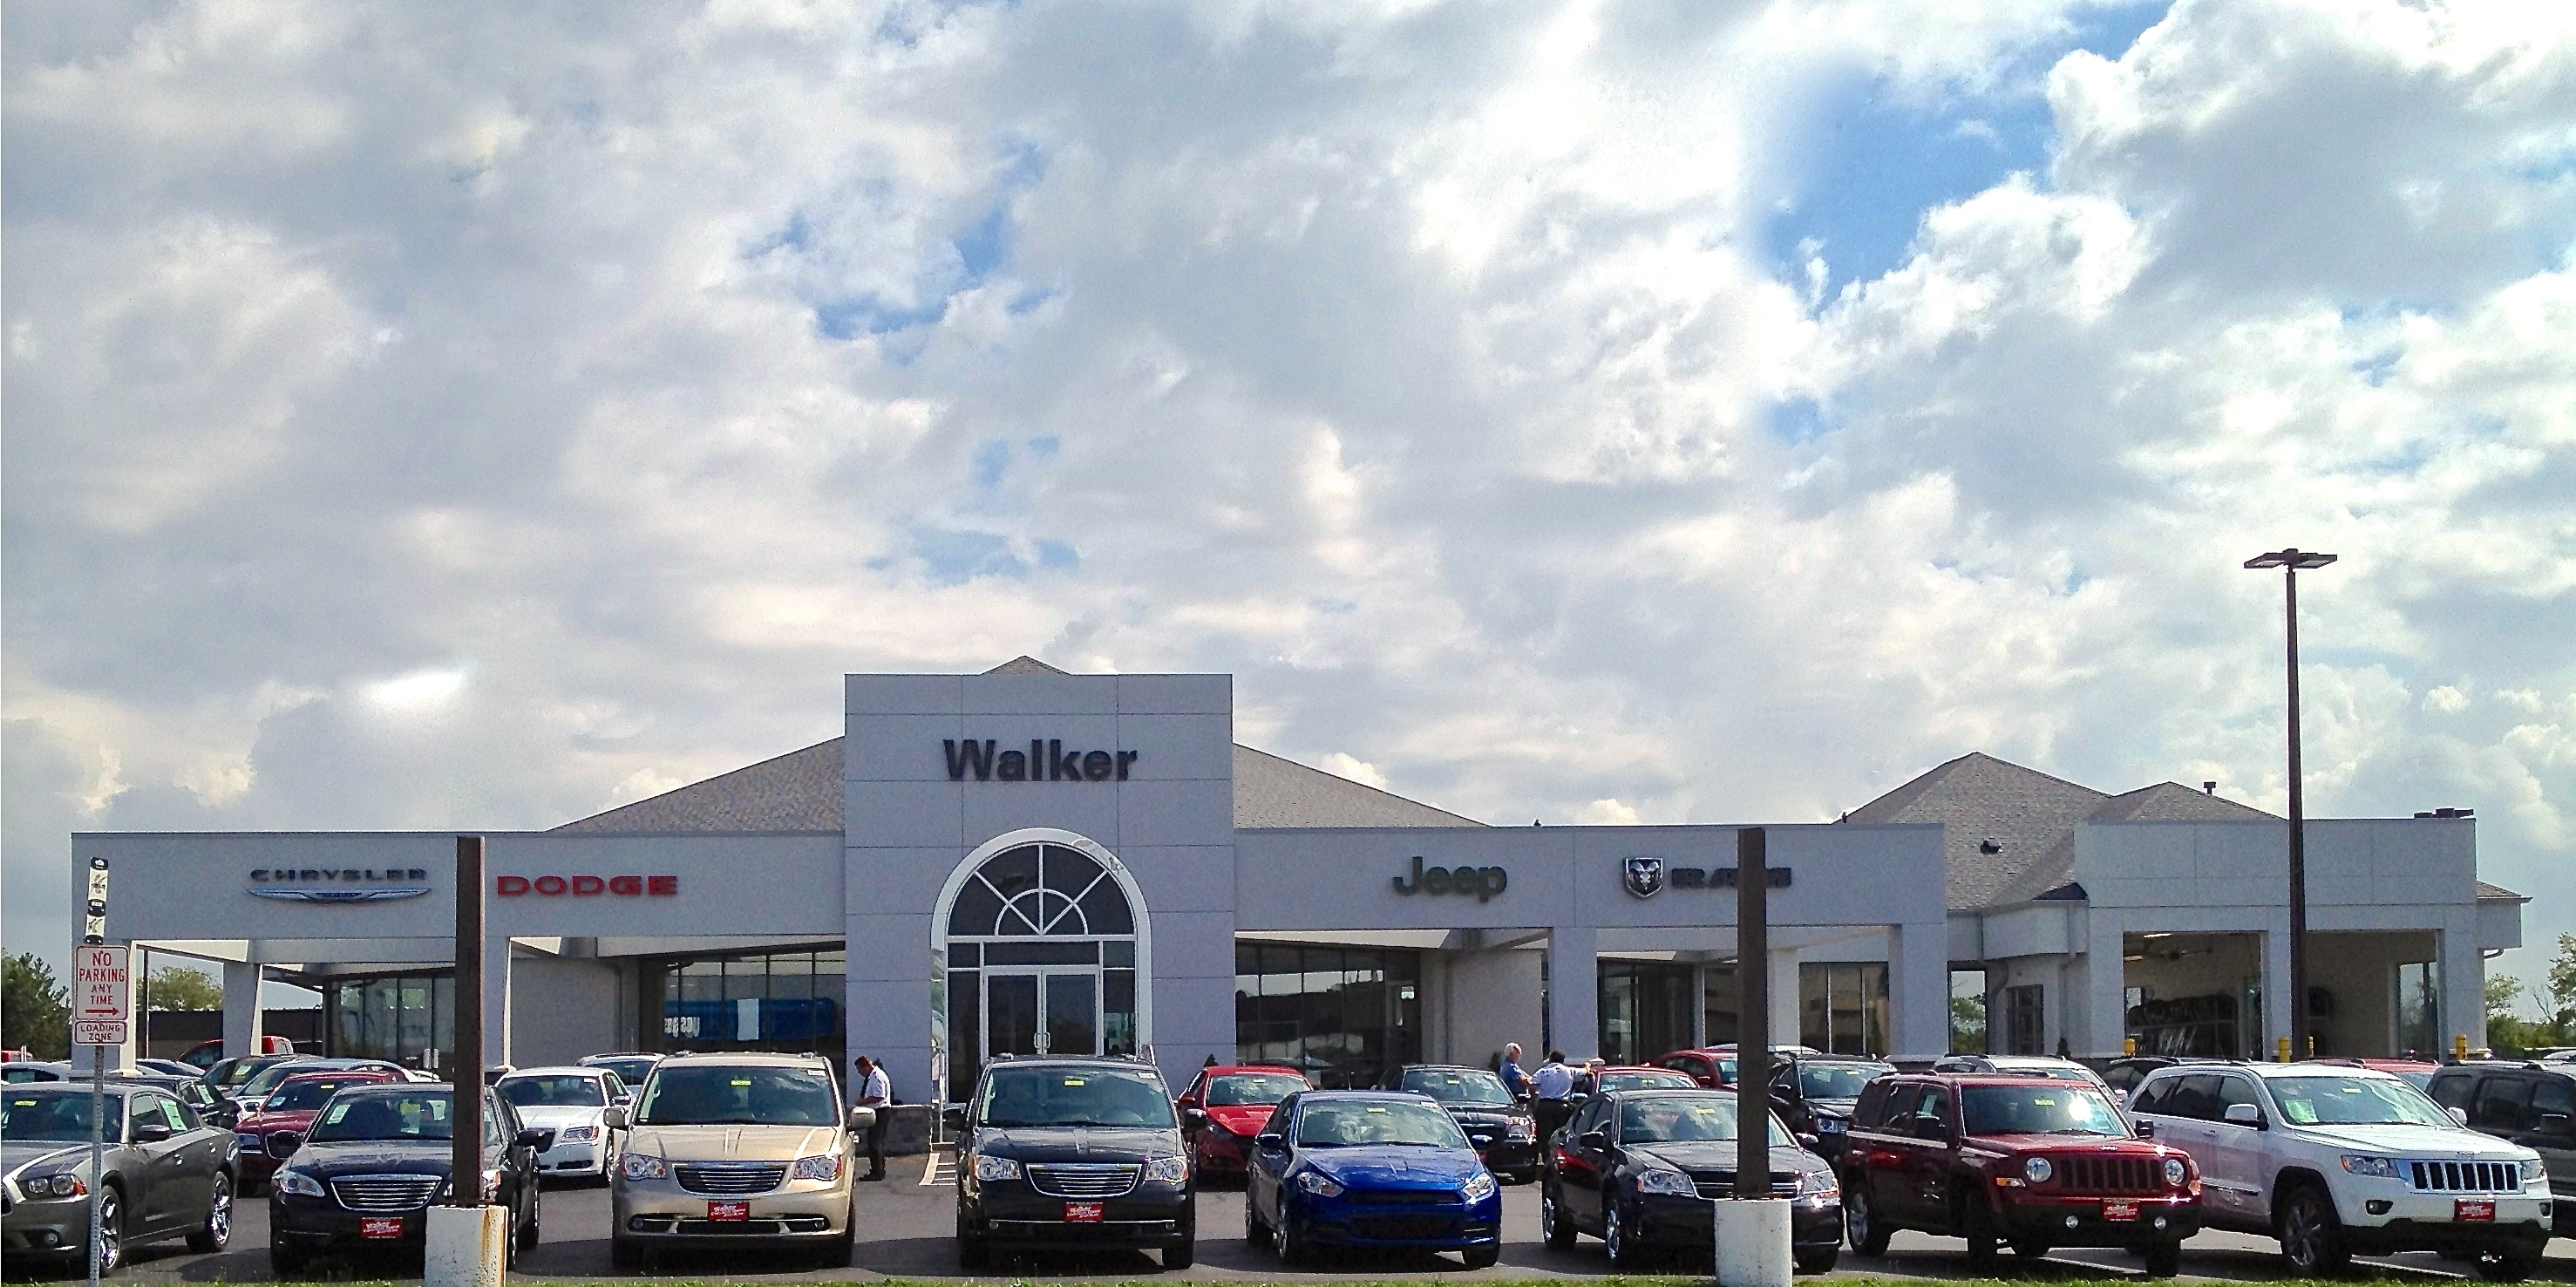 About Walker Chrysler Dodge Jeep Ram Serving Dayton Ohio